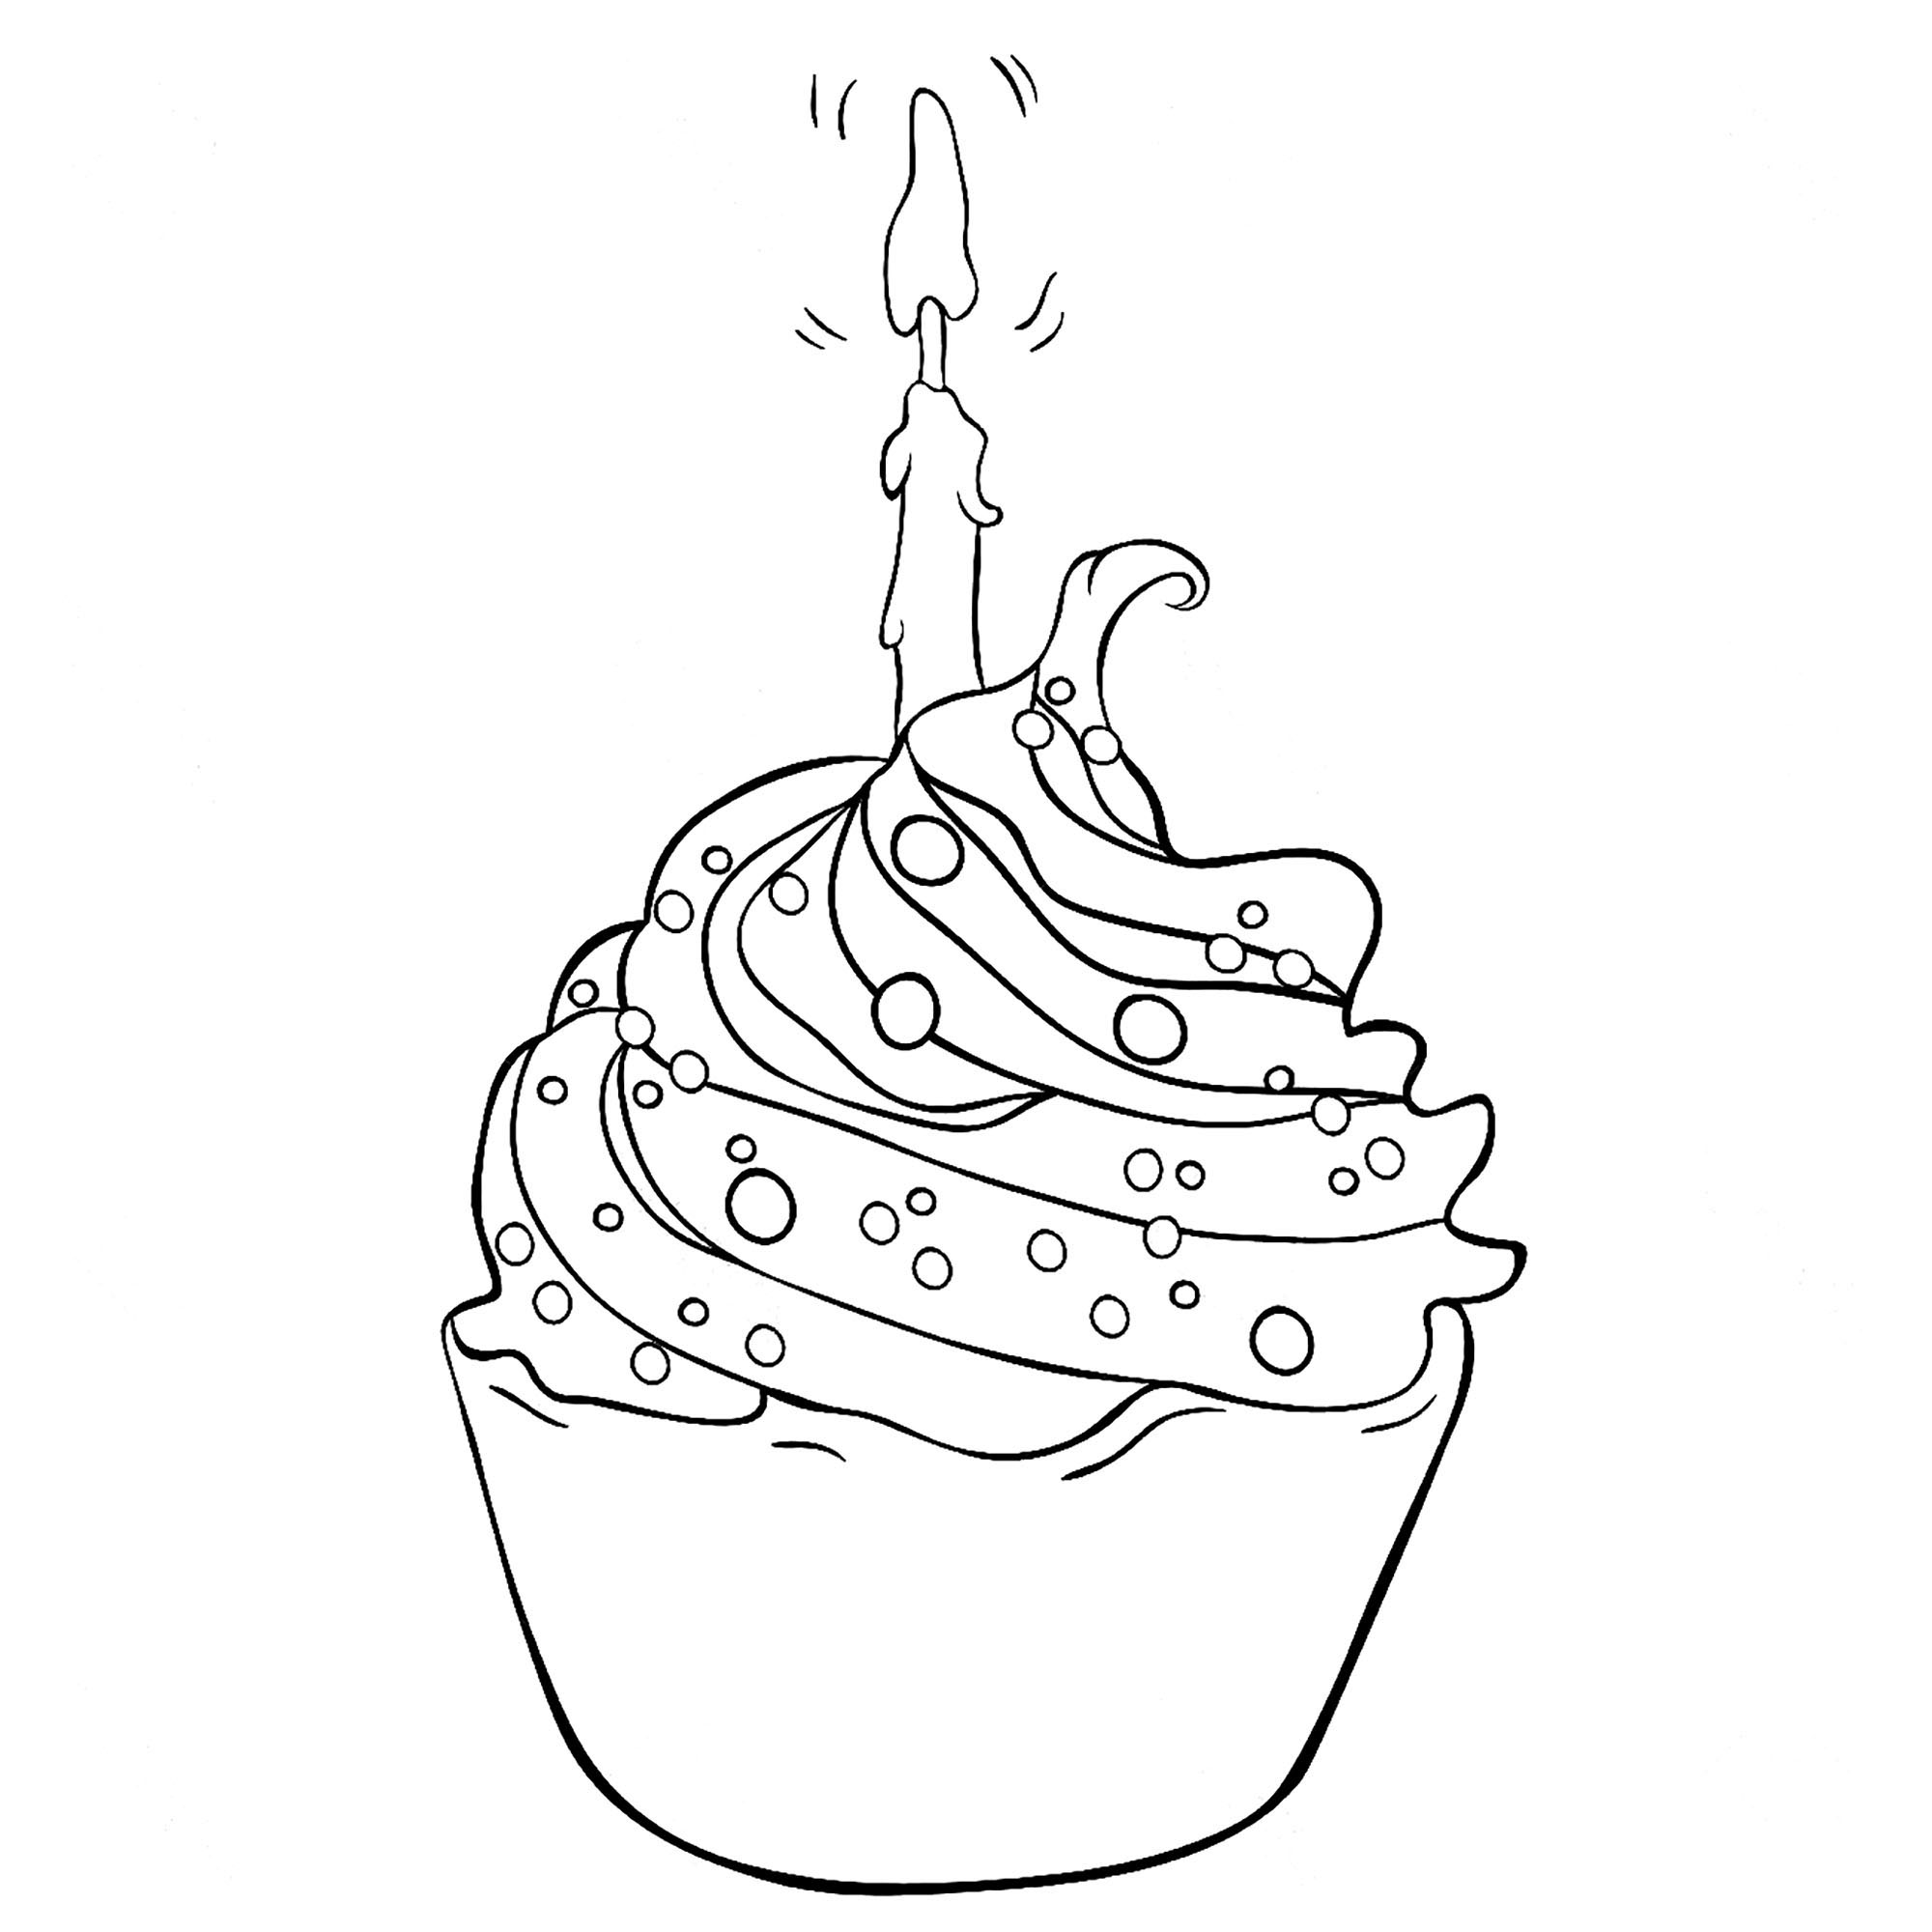 Cupcakes And Cakes coloring page to download